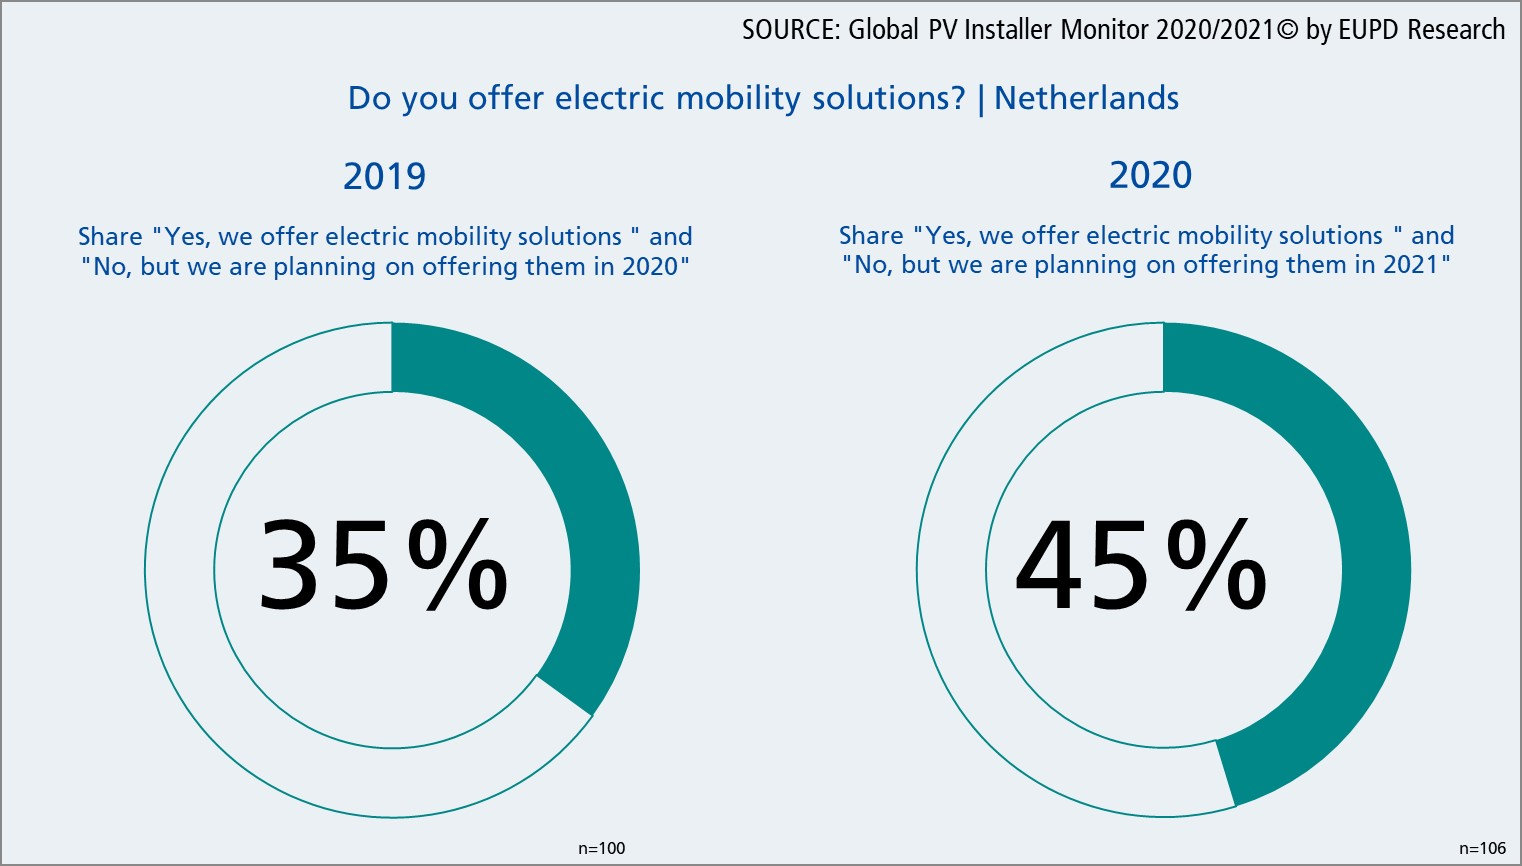 The share of installers who either offer electric mobility solutions, or who are planning to do so in the following year increased from 35 percent in 2019 to 45 percent in 2020